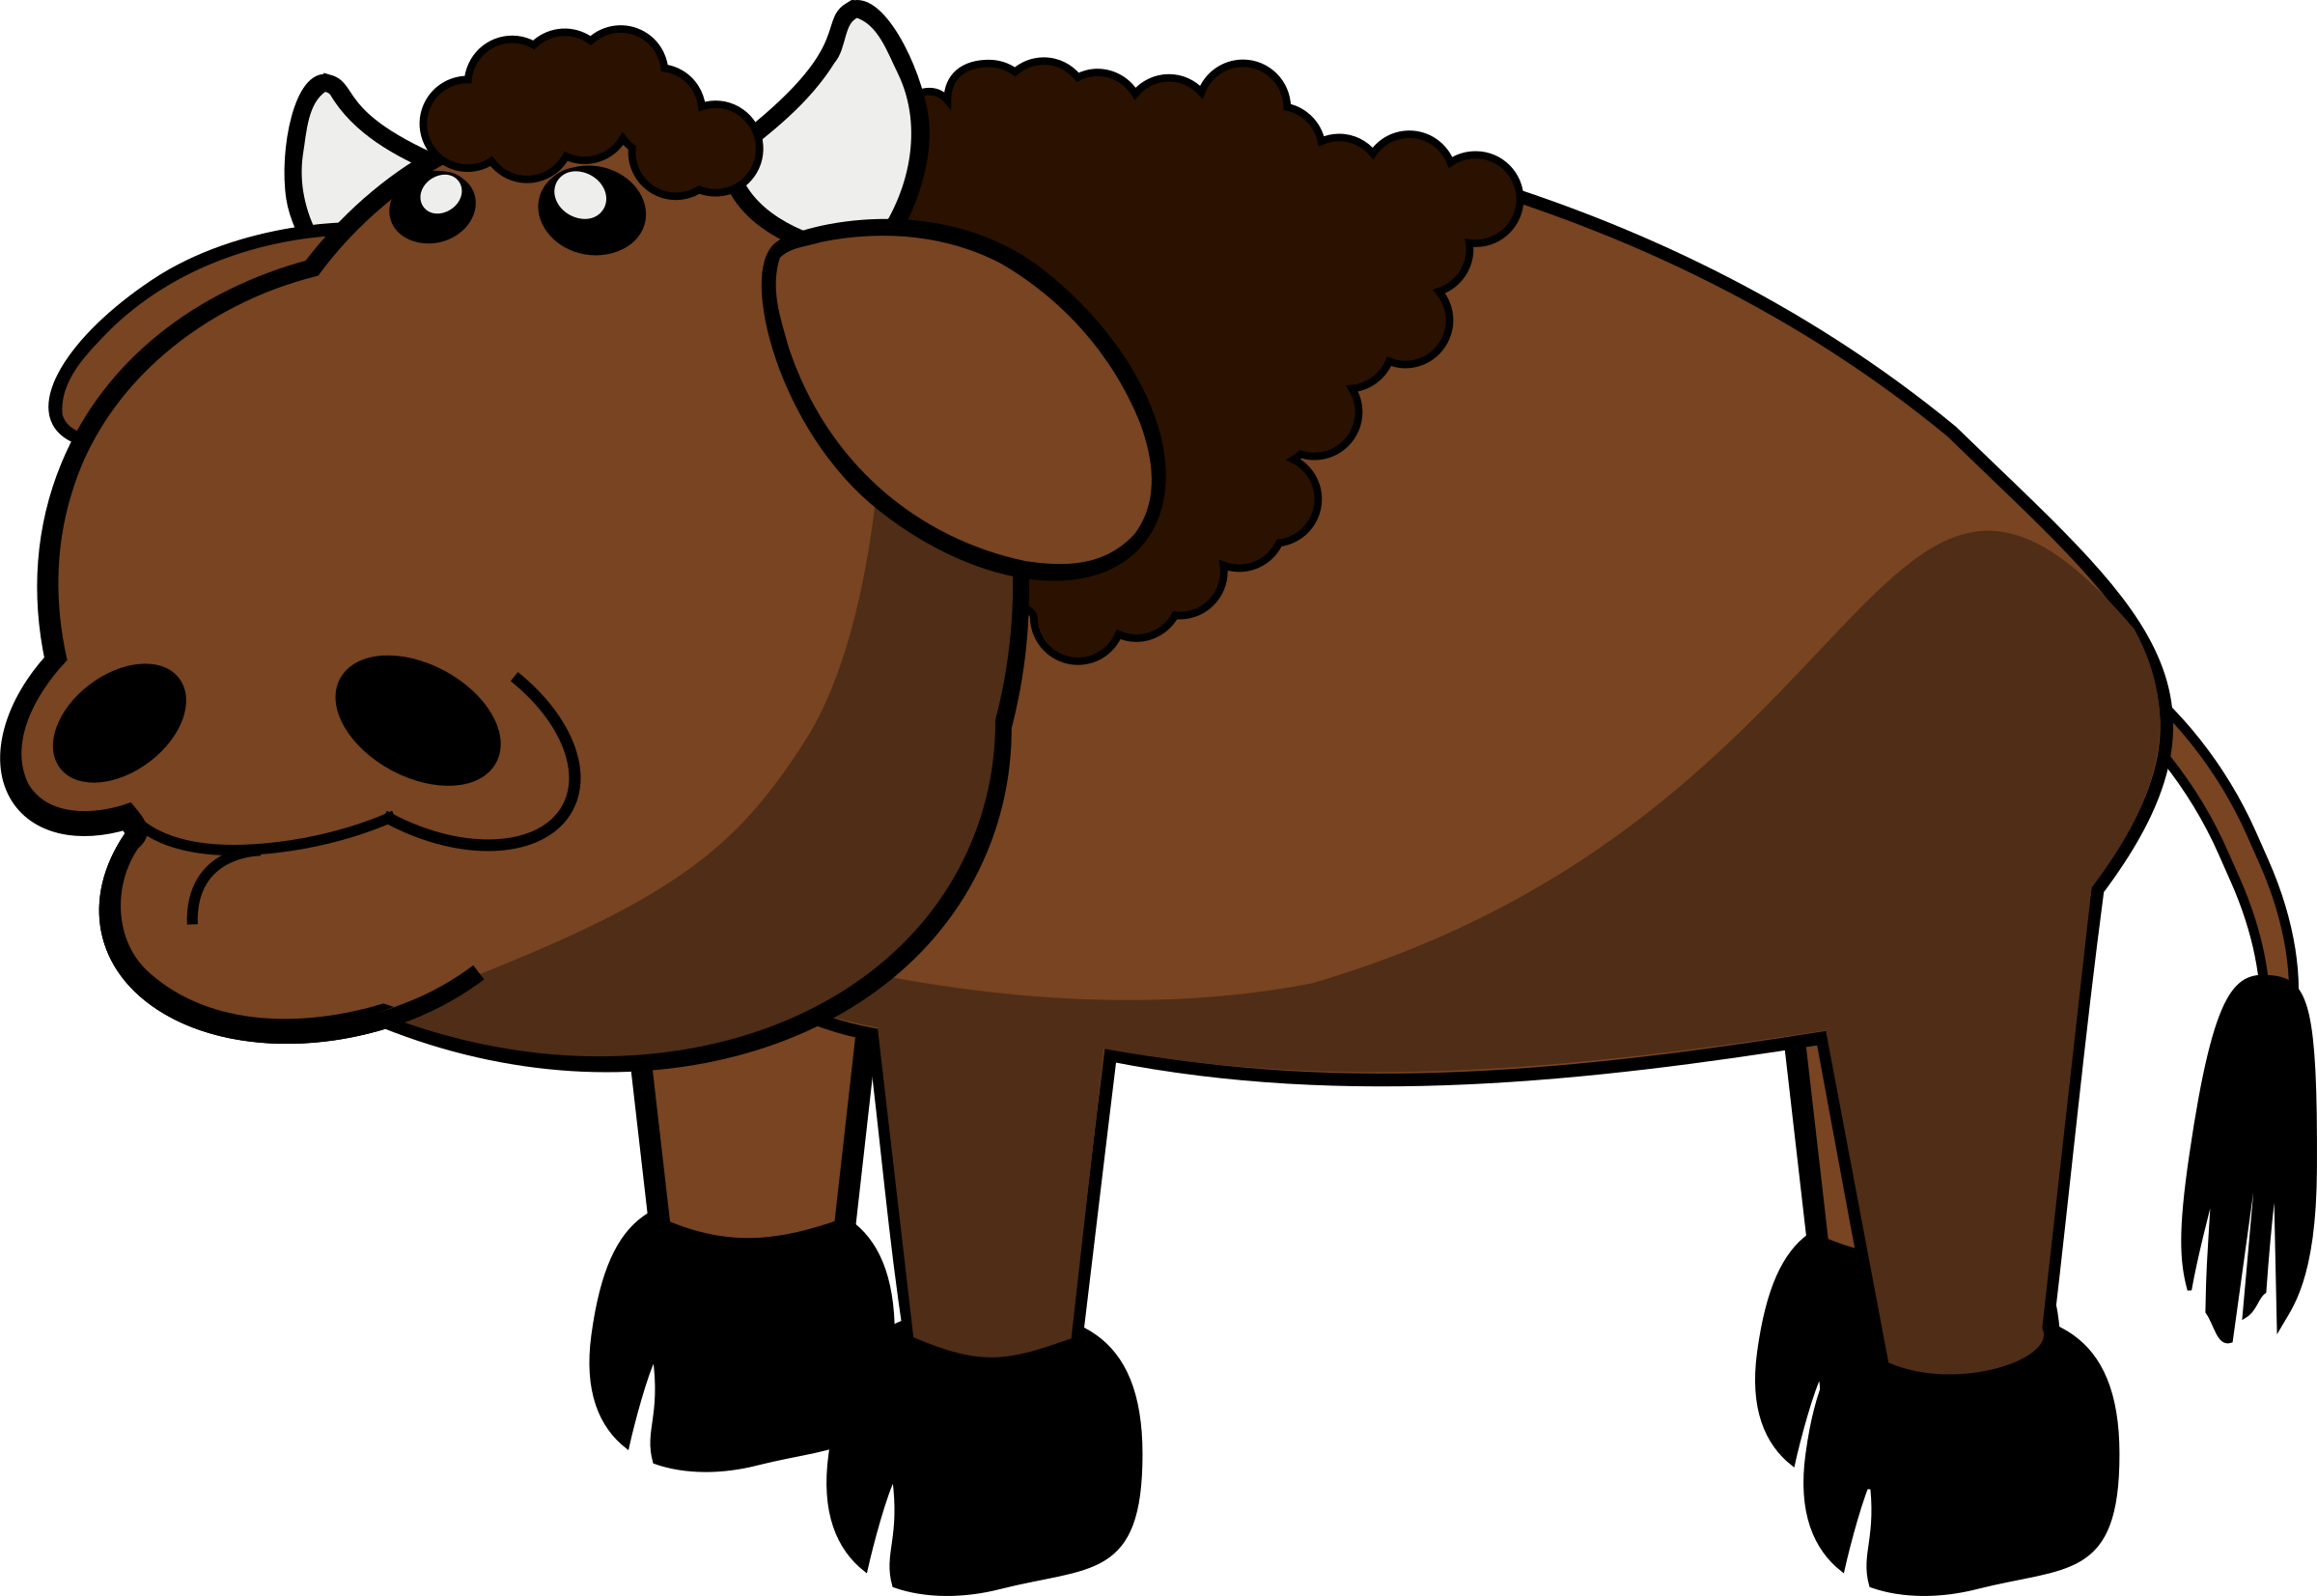 clip royalty free Big image png. Bison clipart cute.